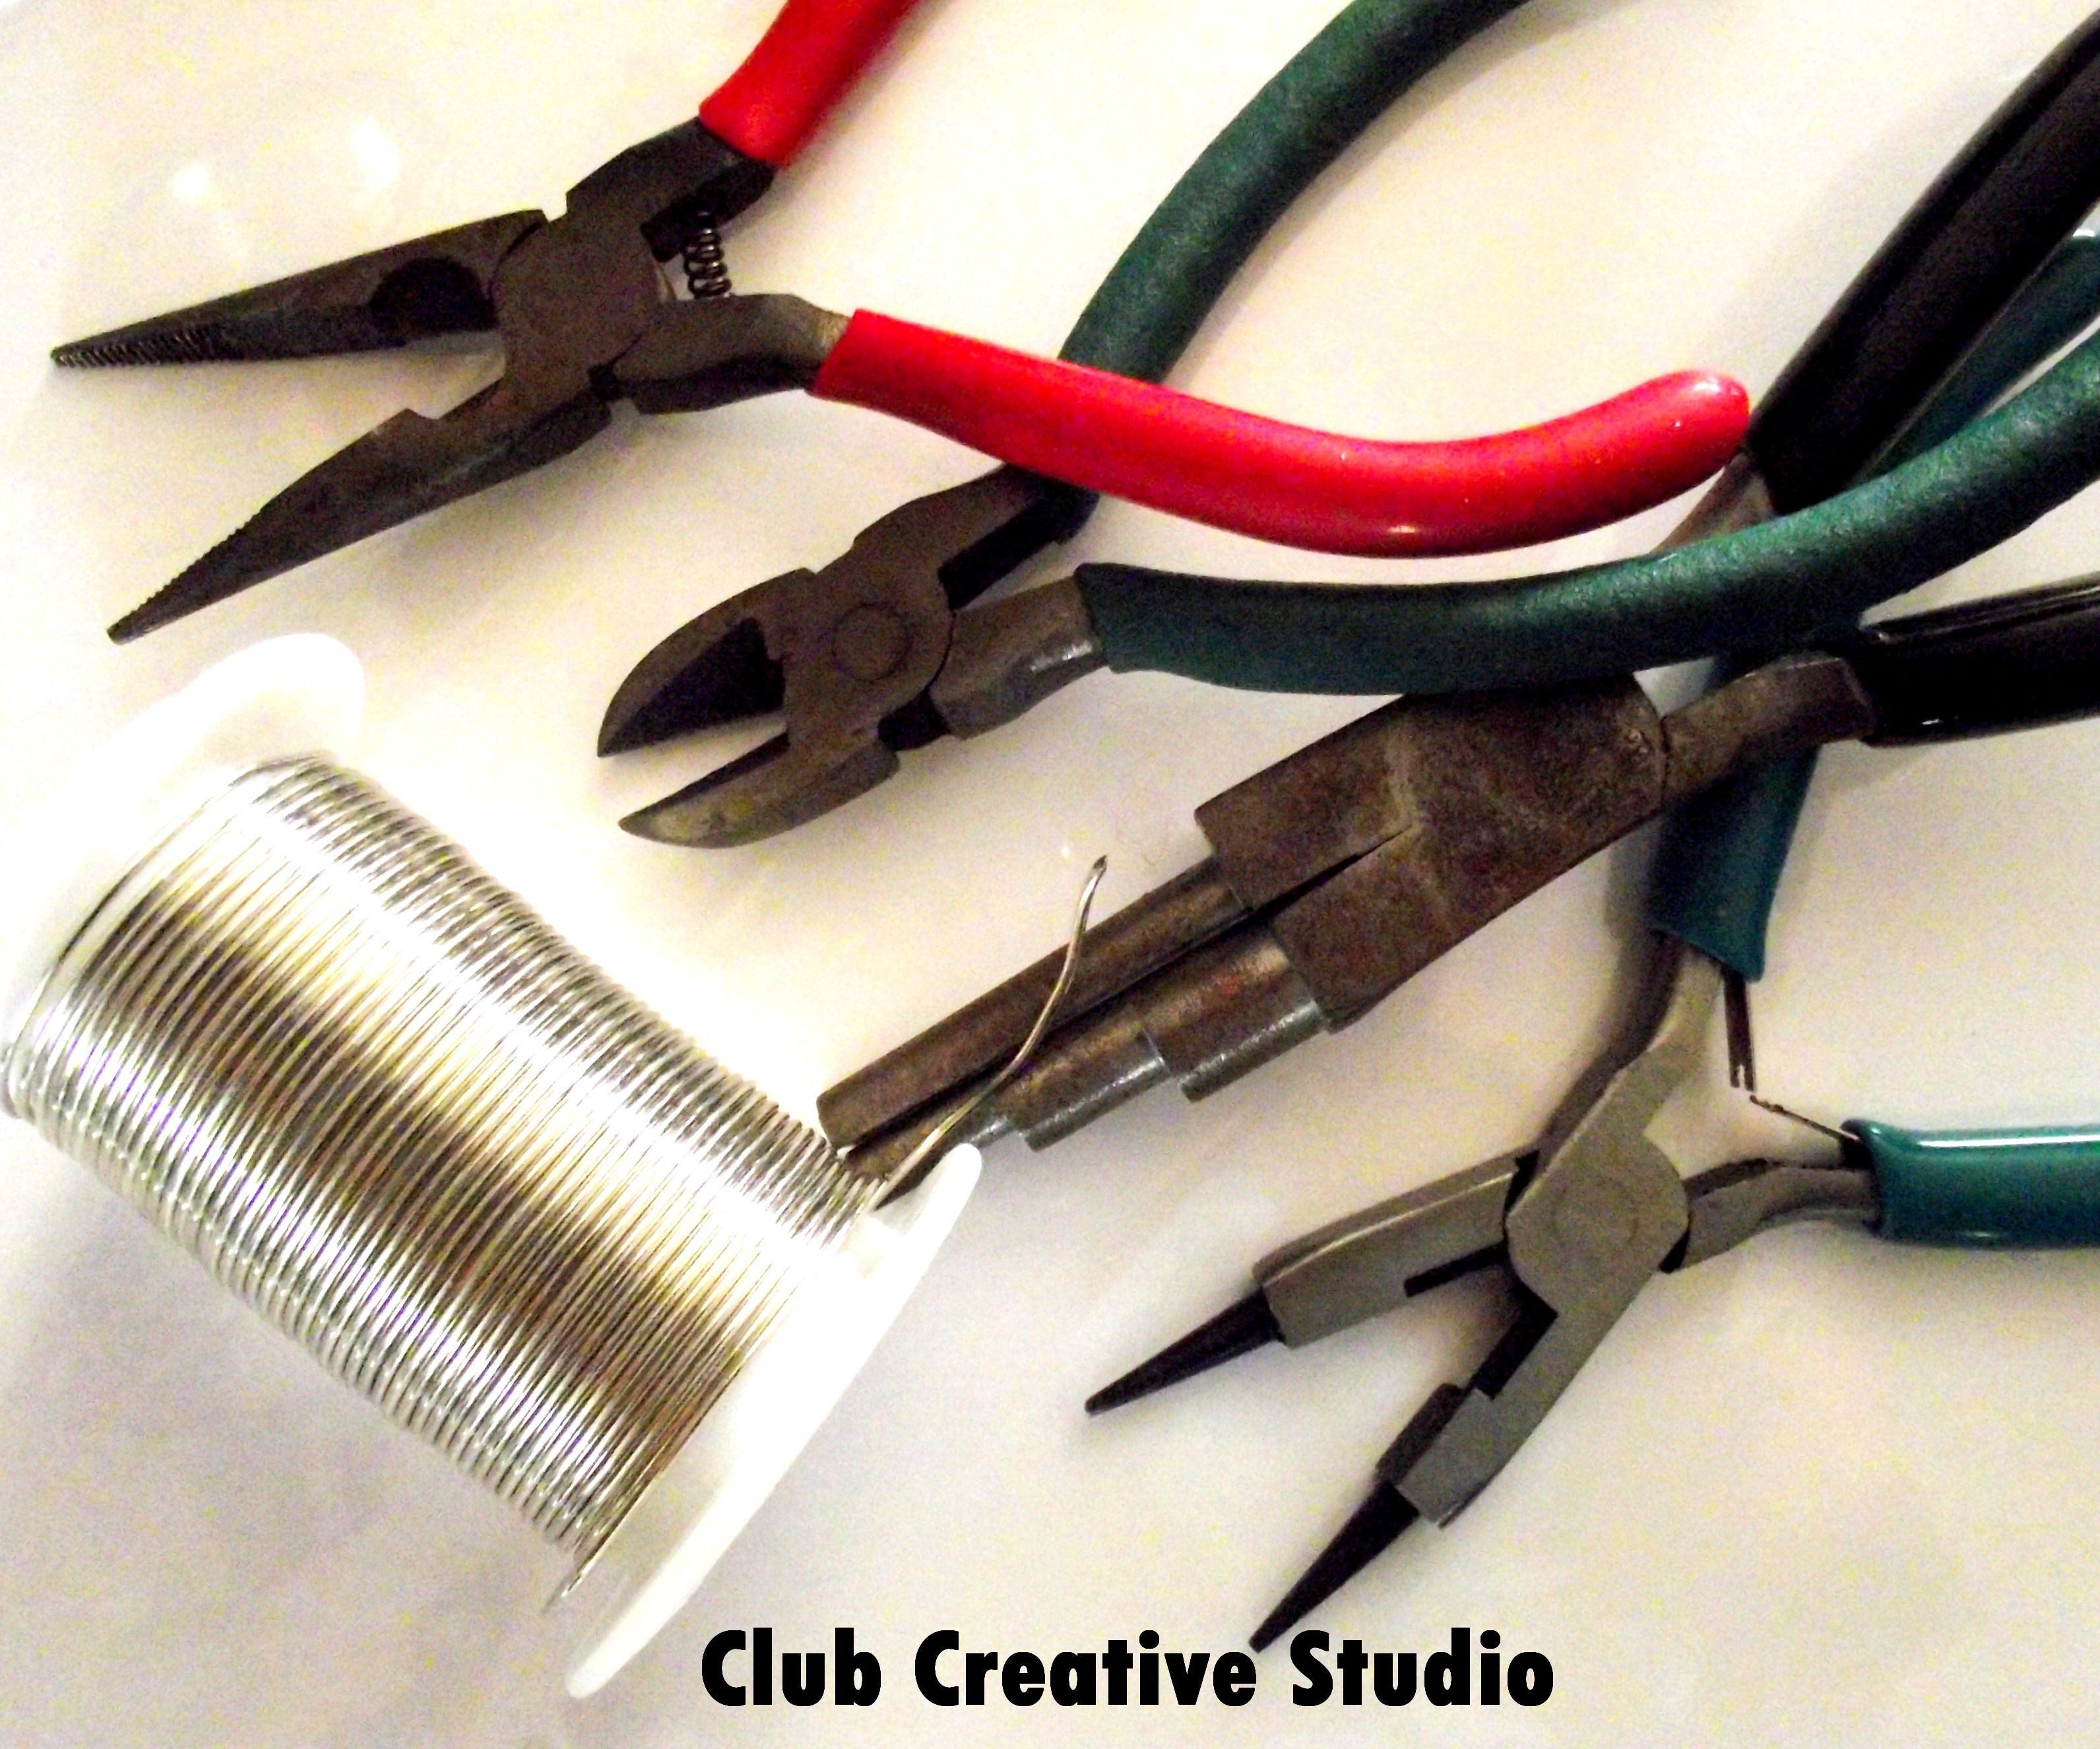 Wire Art Club Creative Studio Cable Wiring Tools I Suggest These For Use To Create A Hook And Loop Set